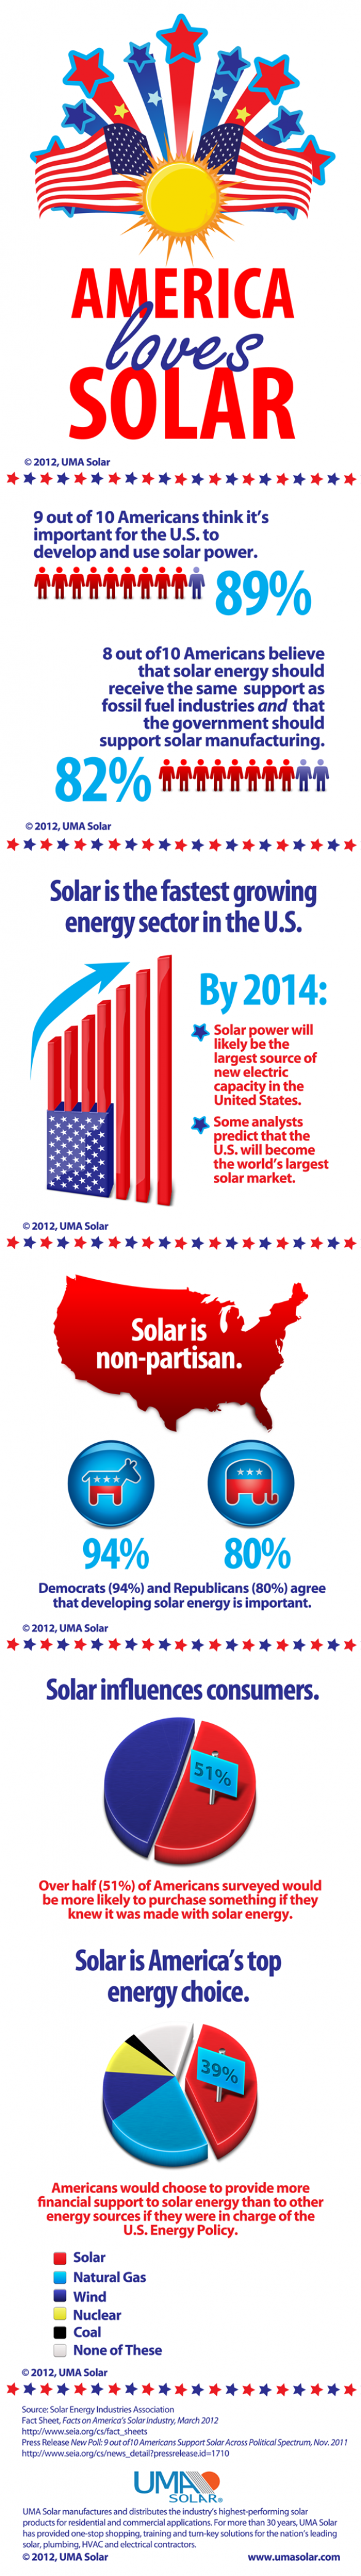 America Loves Solar Power (Infographic)